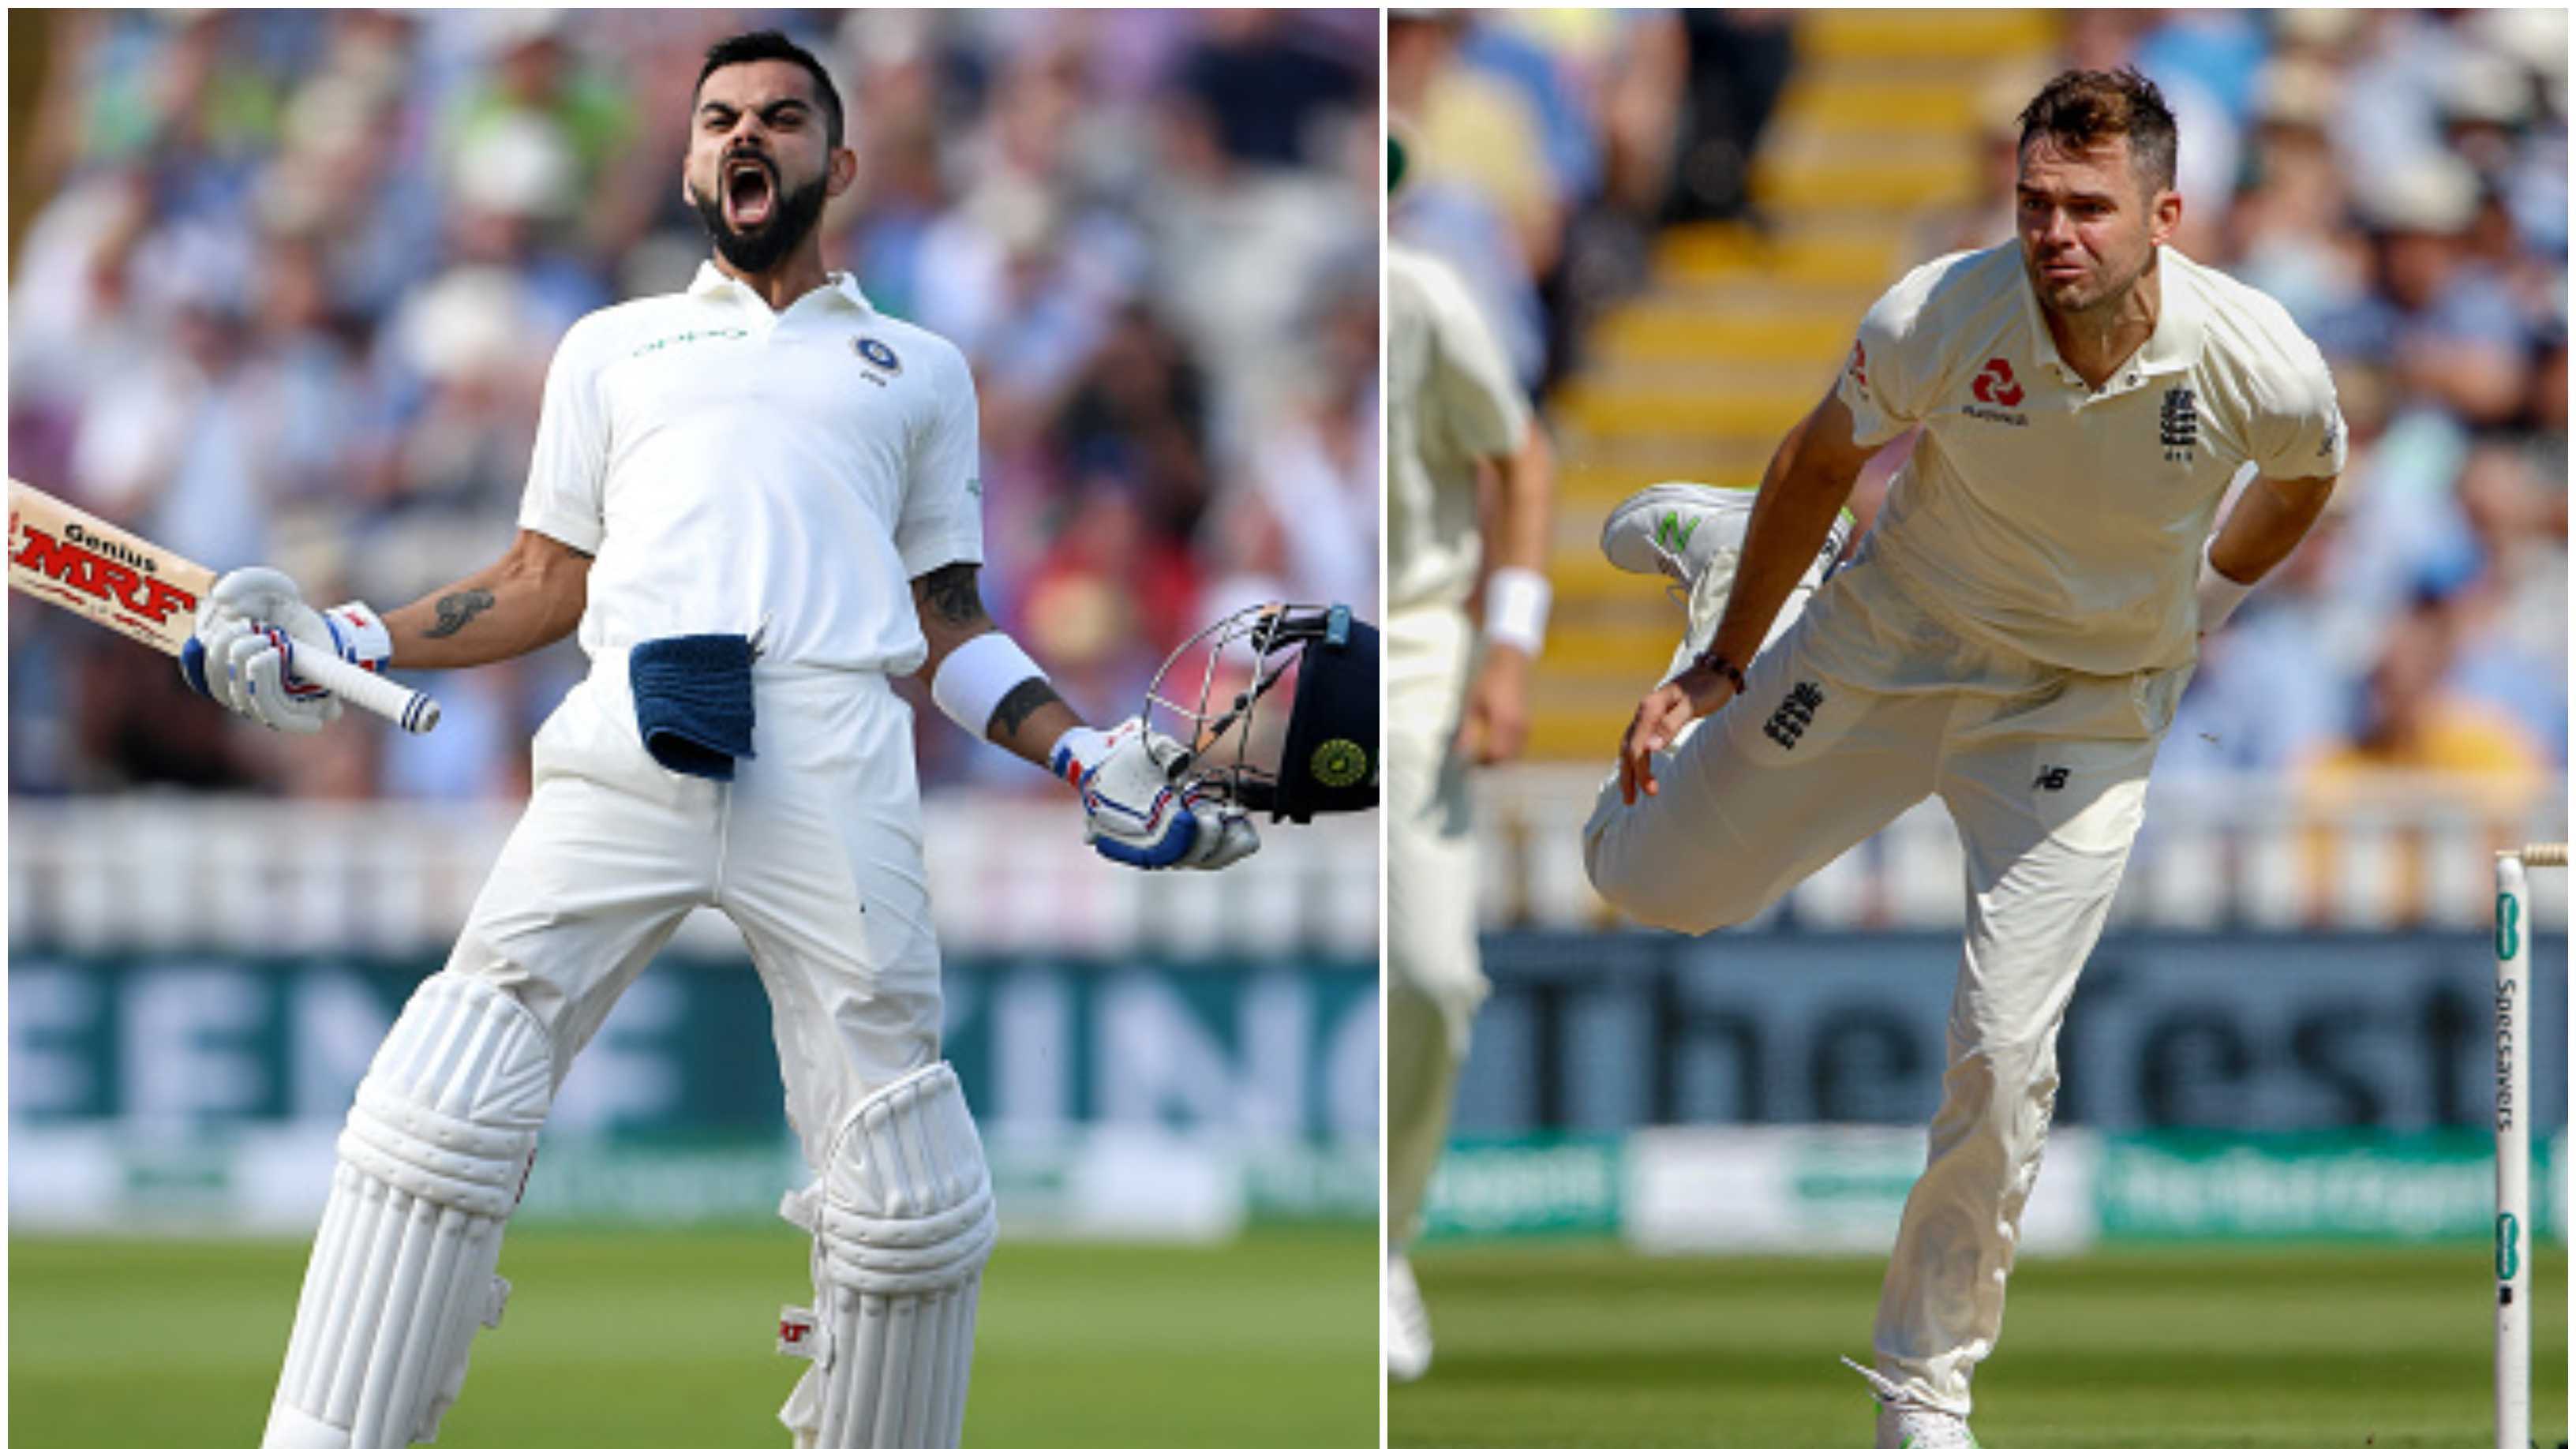 ENG vs IND 2018: James Anderson unveils the subtle changes that Virat Kohli made in his batting technique